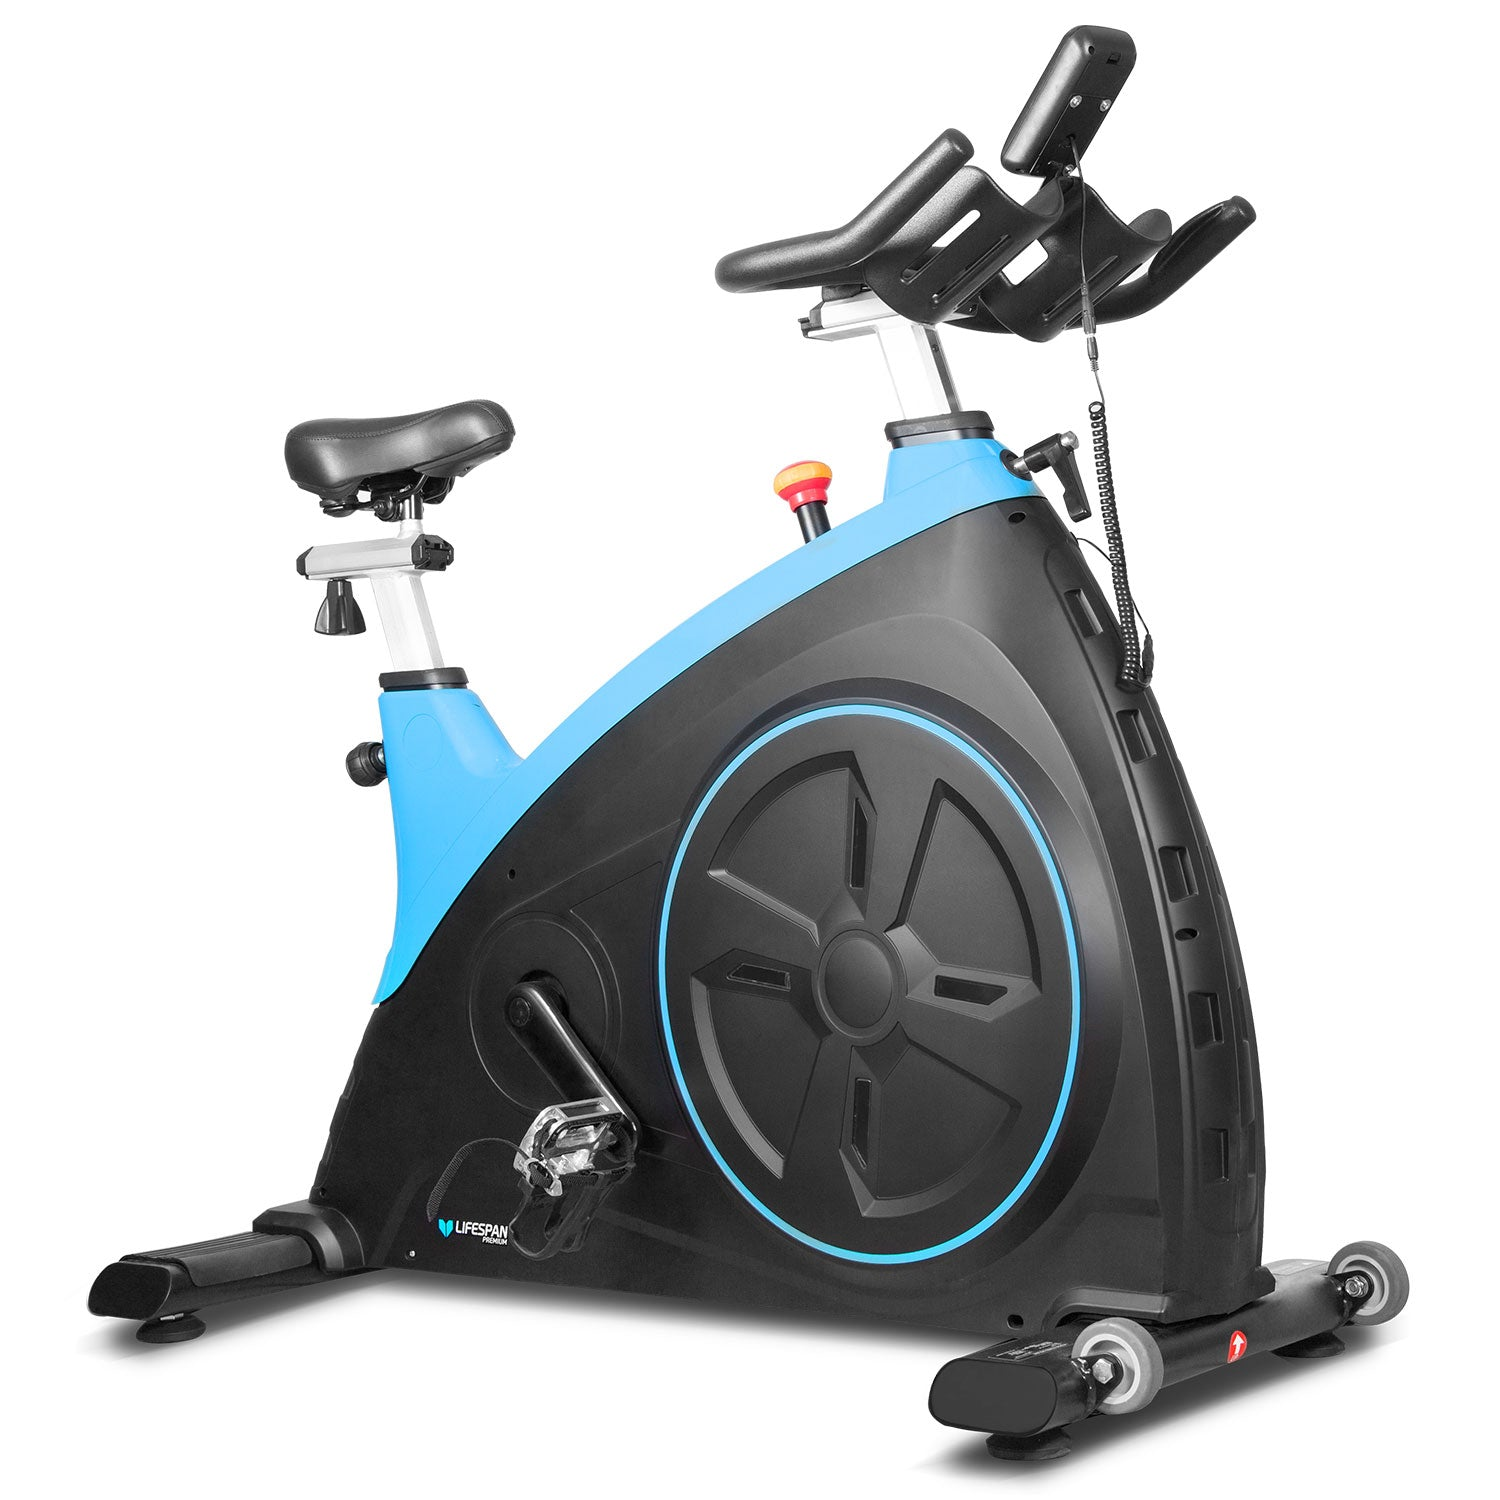 SP-960 SPIN BIKE